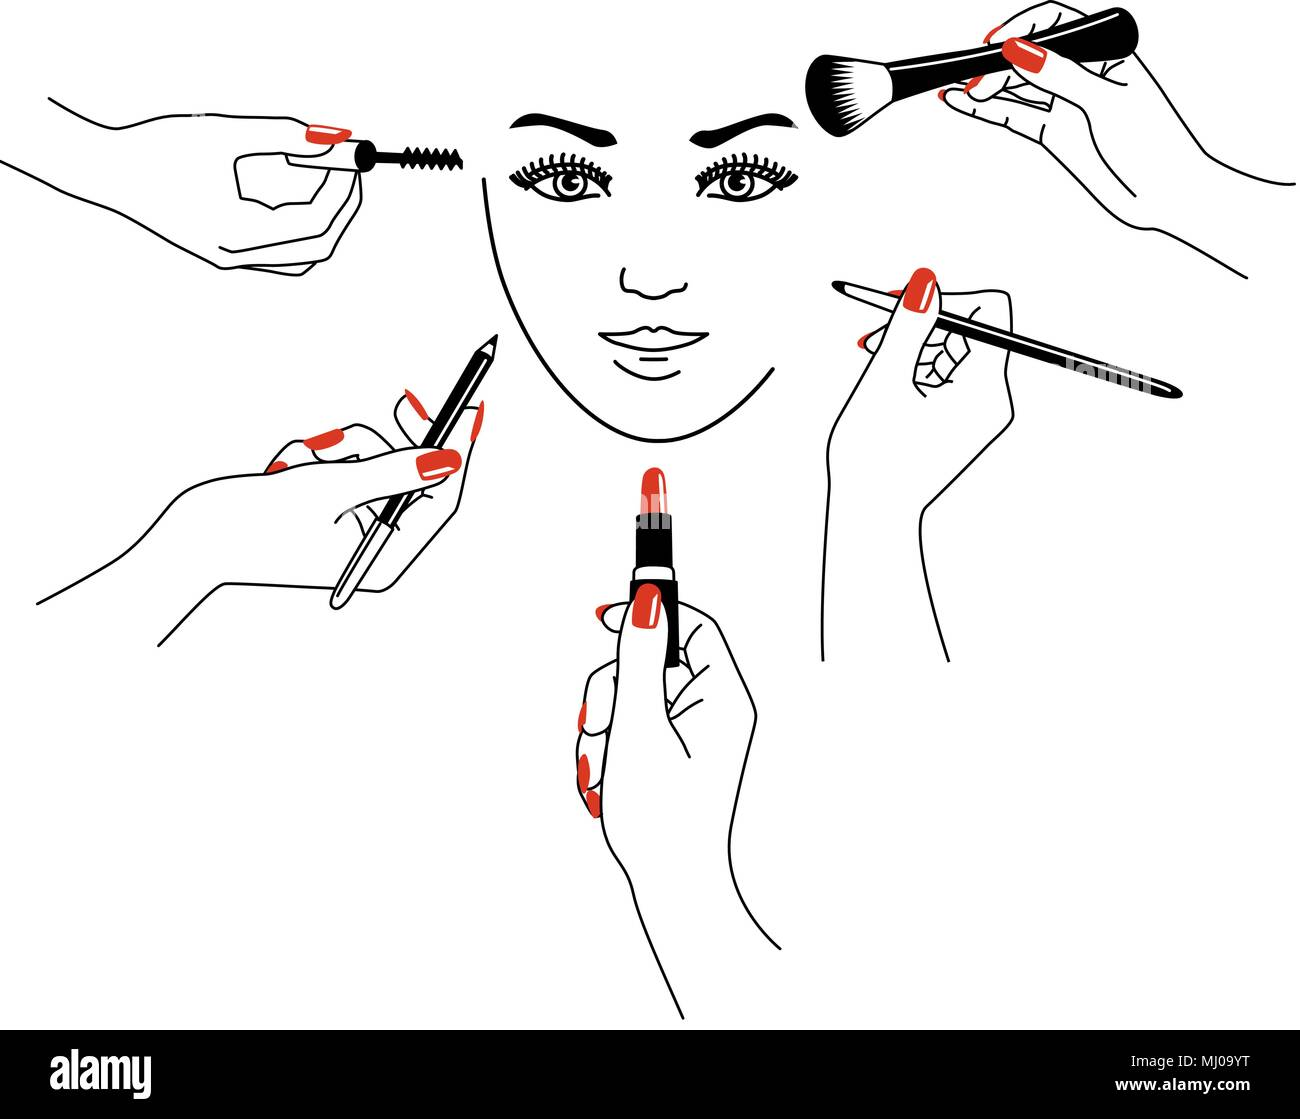 Vector Illustration Of Beauty Specialist With Tools For Make Up In Hand Isolated On White Background Stock Vector Image Art Alamy